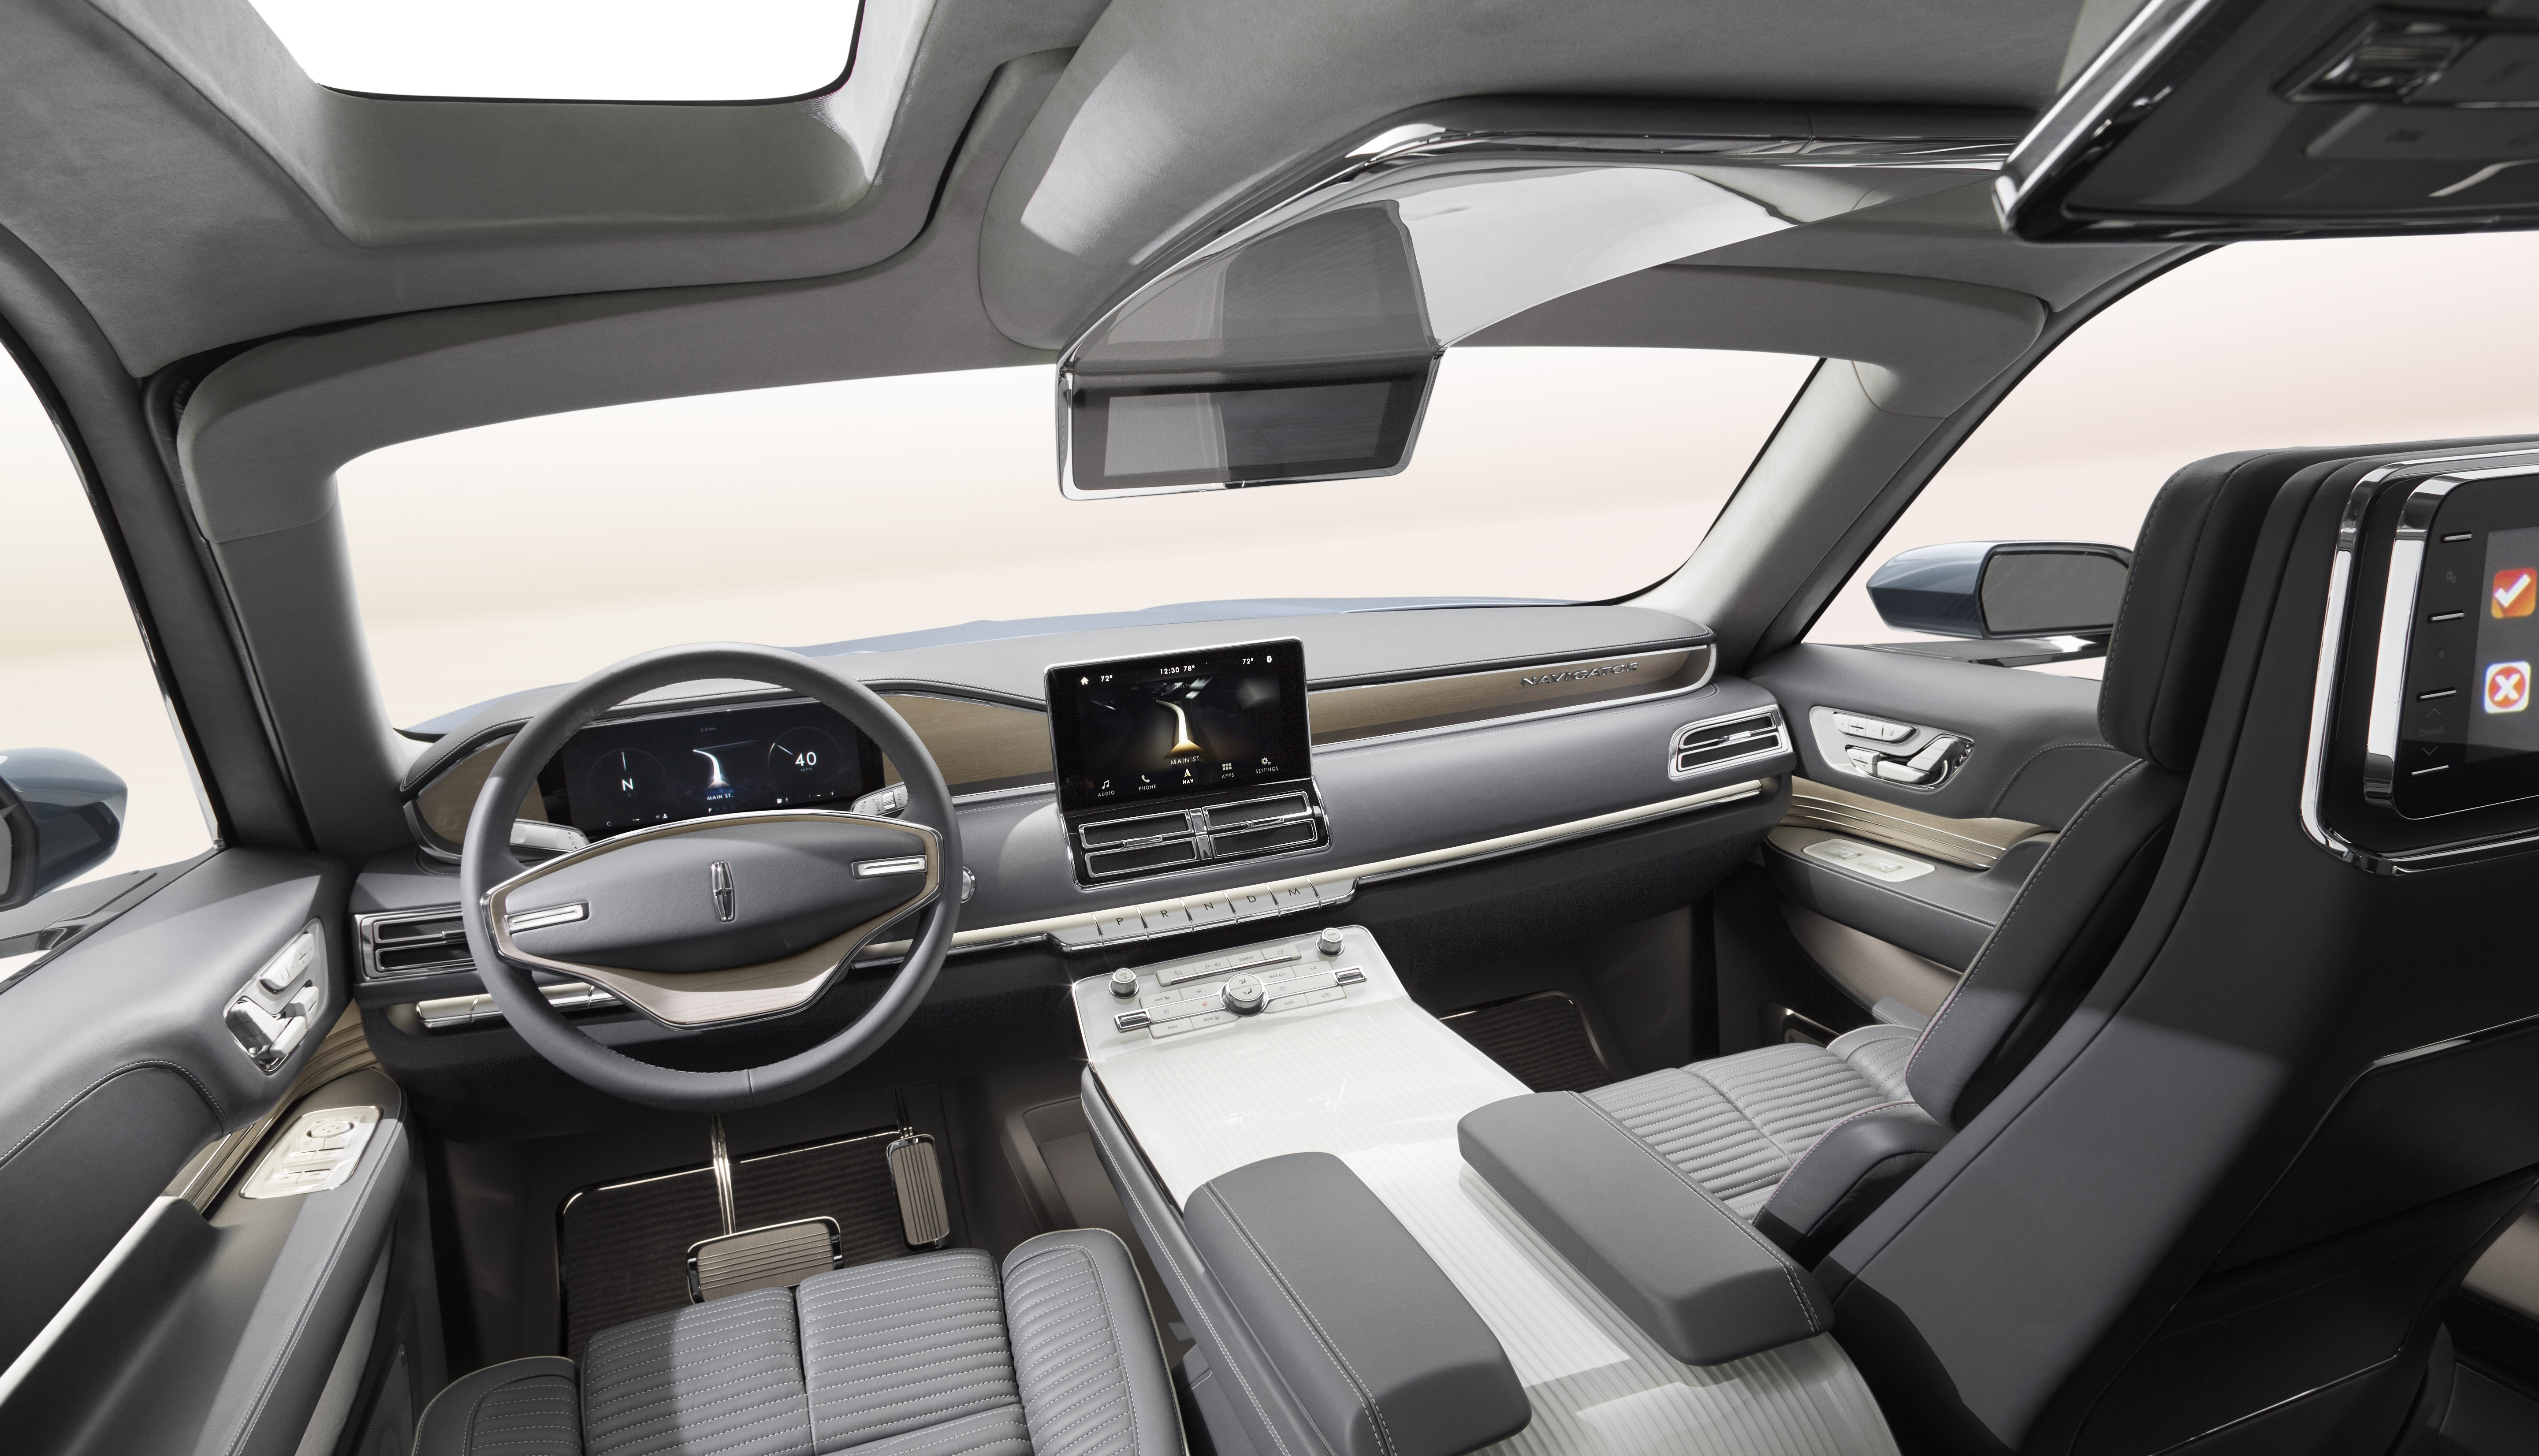 Lincoln Mkx Makes World Debut At Naias Its A Glorified Ford Edge Inside Live Photos in addition Zealandia Map White together with Maxresdefault besides  as well Interior Web. on 2017 lincoln continental